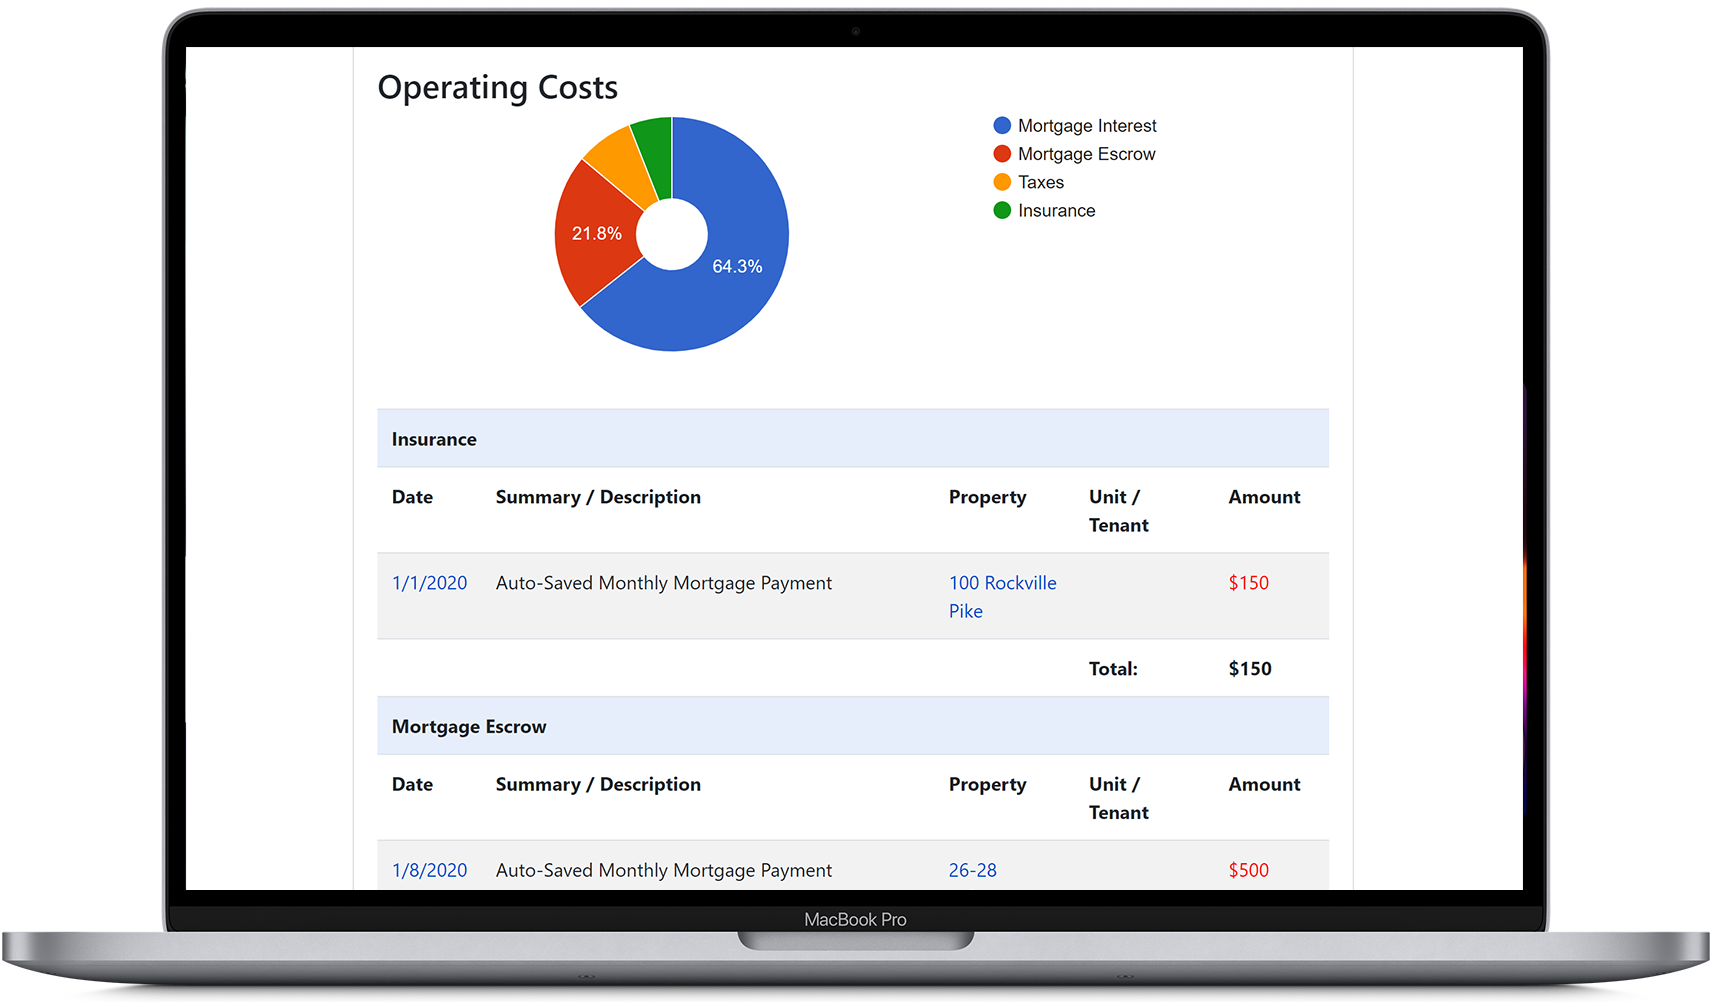 View the operating costs report in our property manager software, showing rental expenses